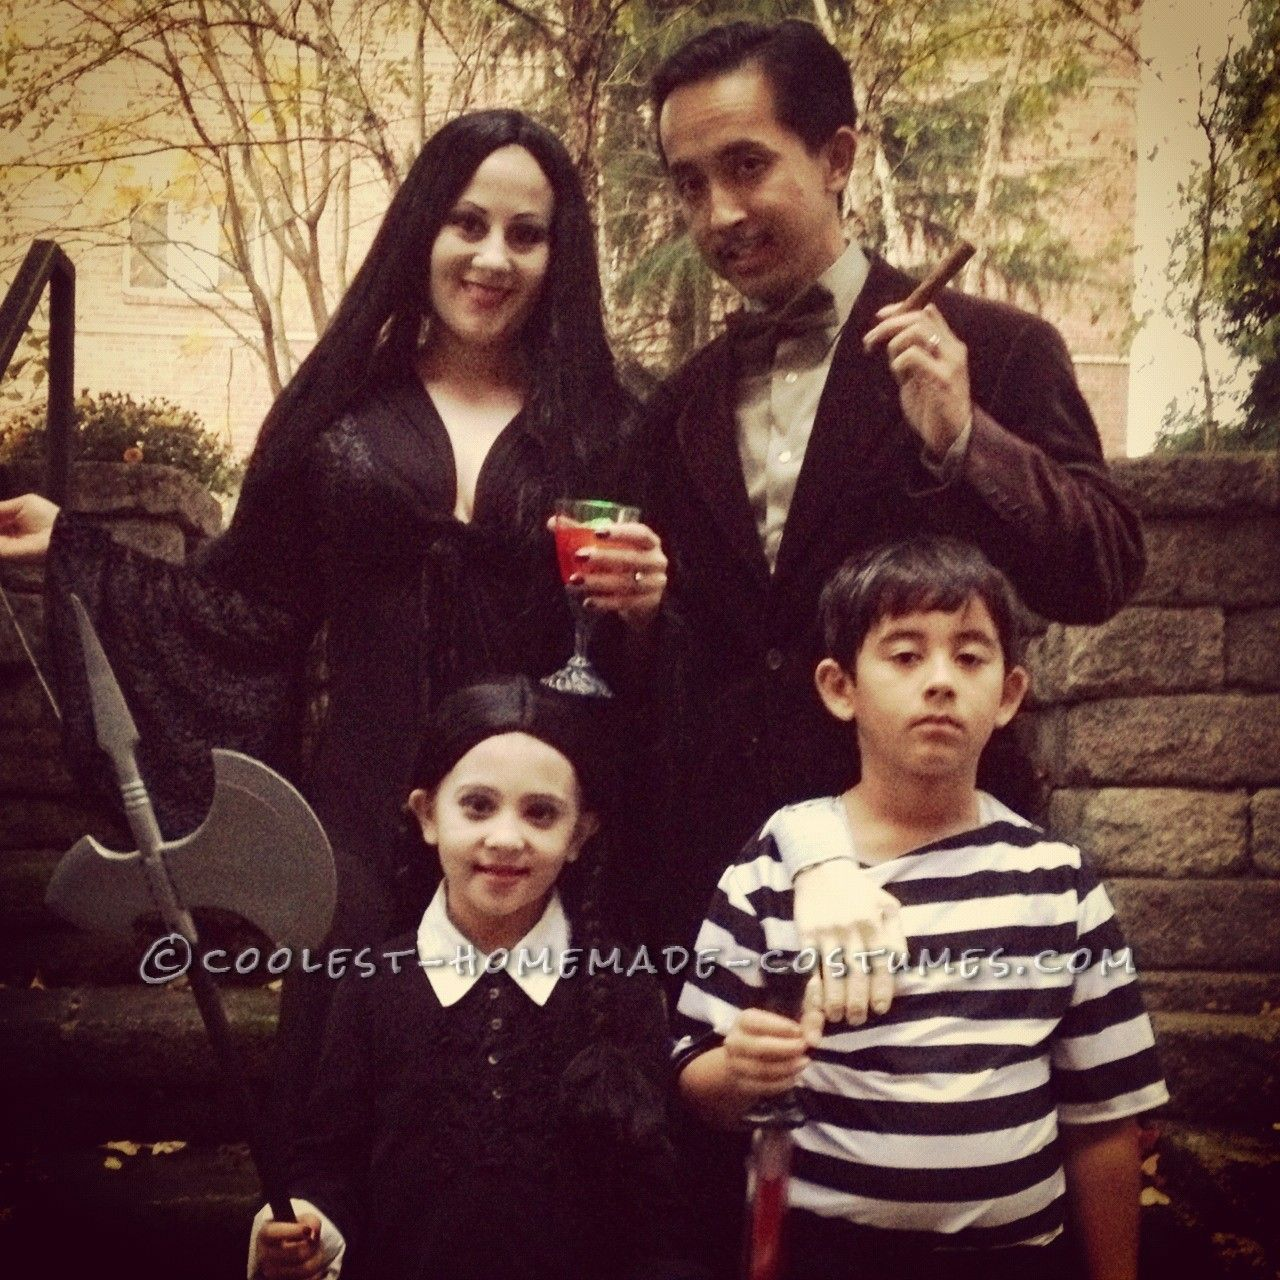 Homemade Addams Family Halloween Costume | Discover best ideas ...